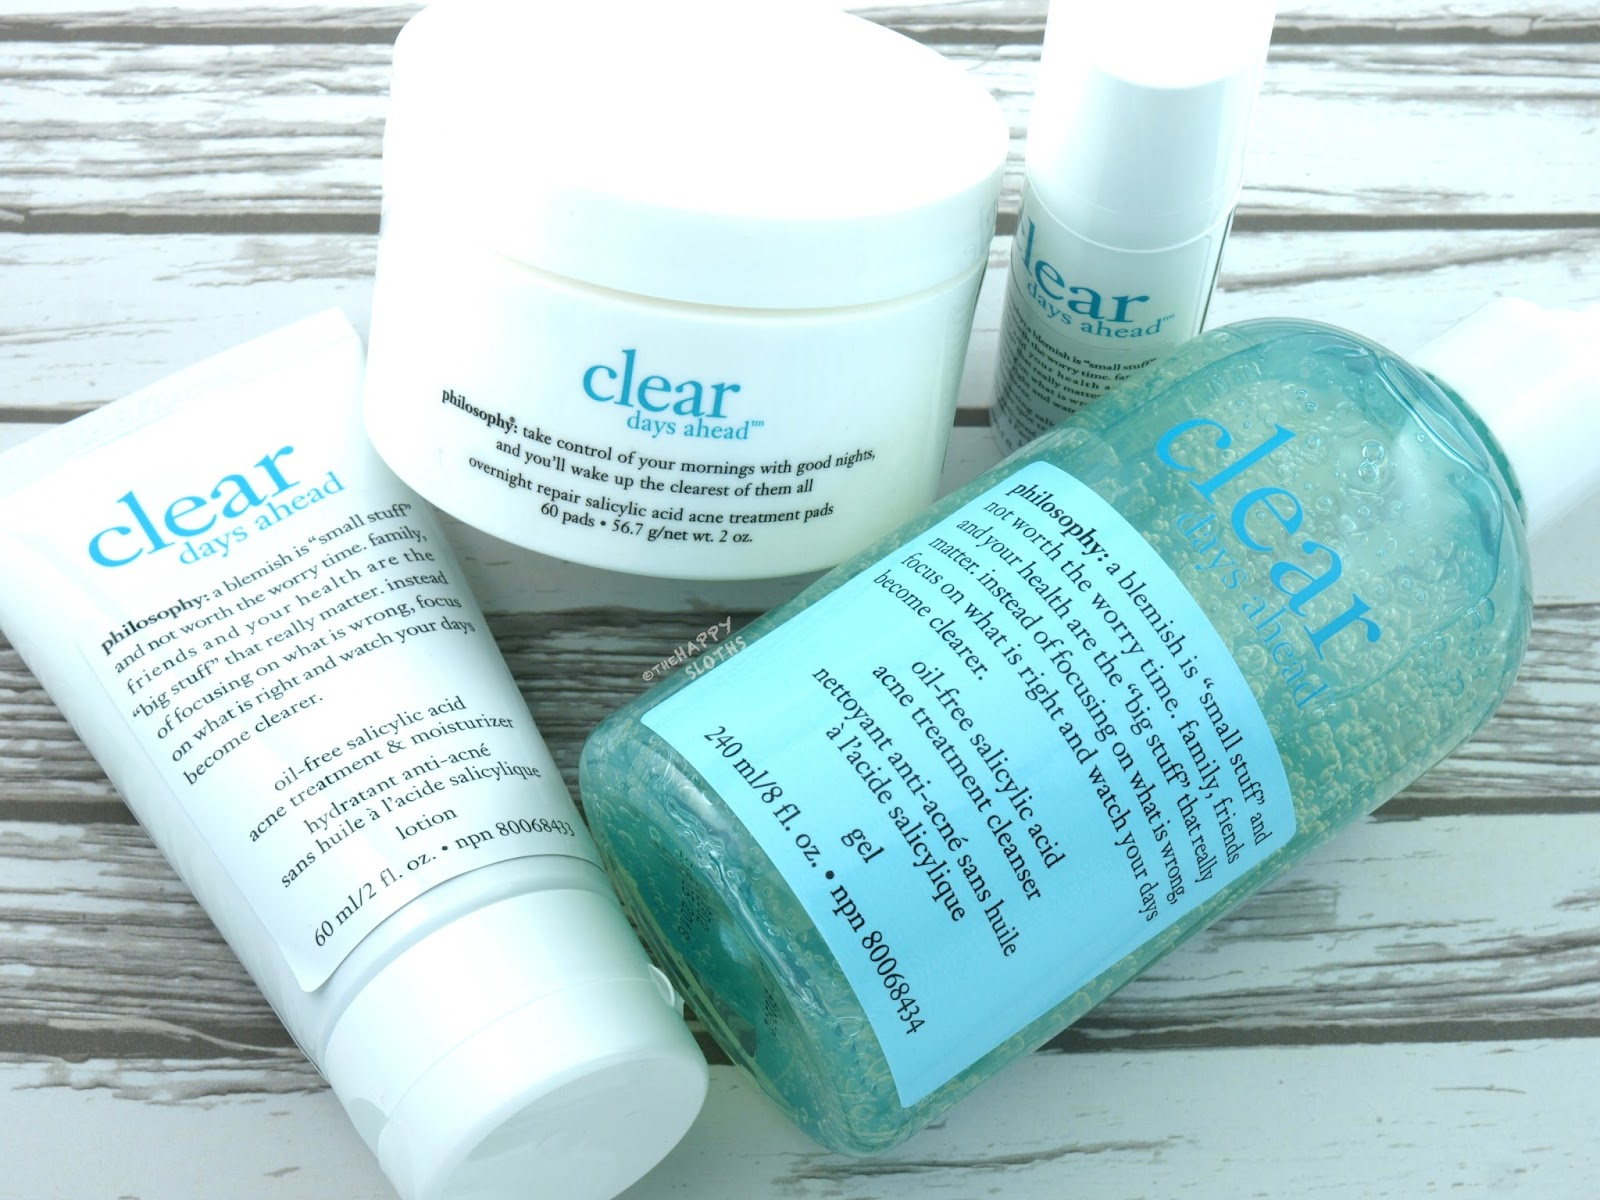 Philosophy Clear Days Ahead Acne Treatment Collection: Review